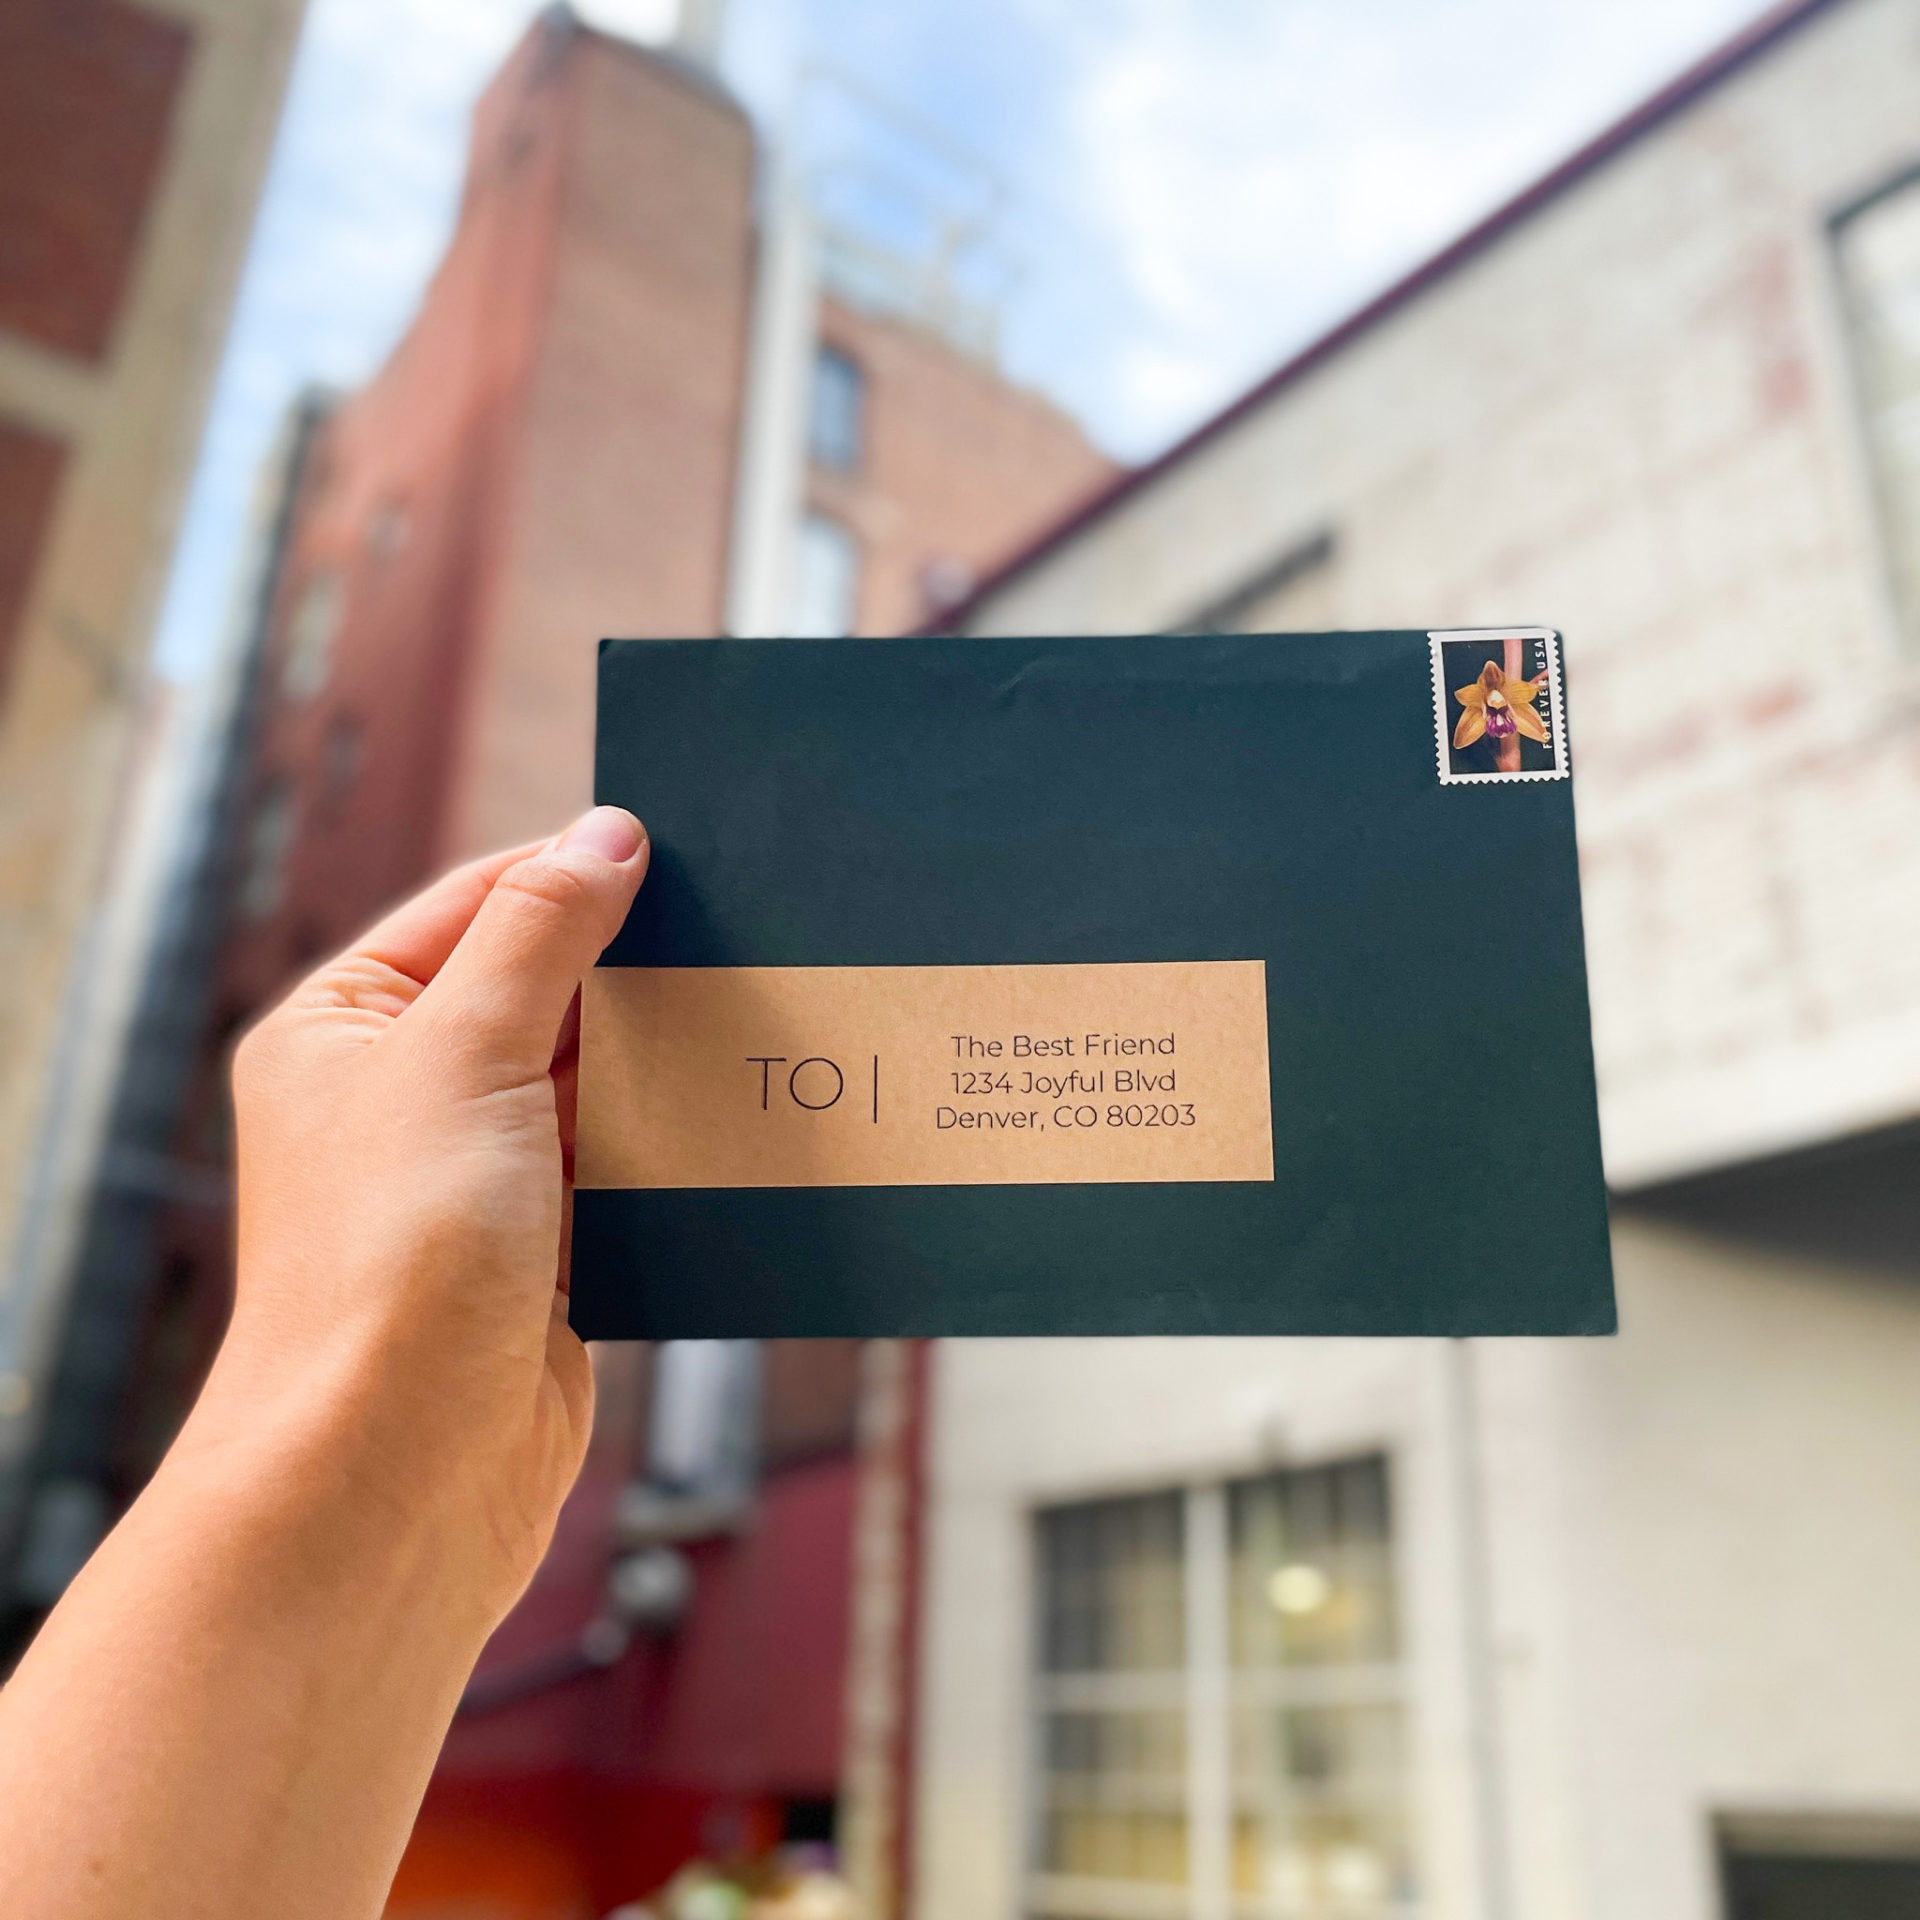 """image of a stamped, forest green envelope held up in front of blurry brick buildings. The envelope has a brown, kraft paper label that reads """"To"""" and an address"""